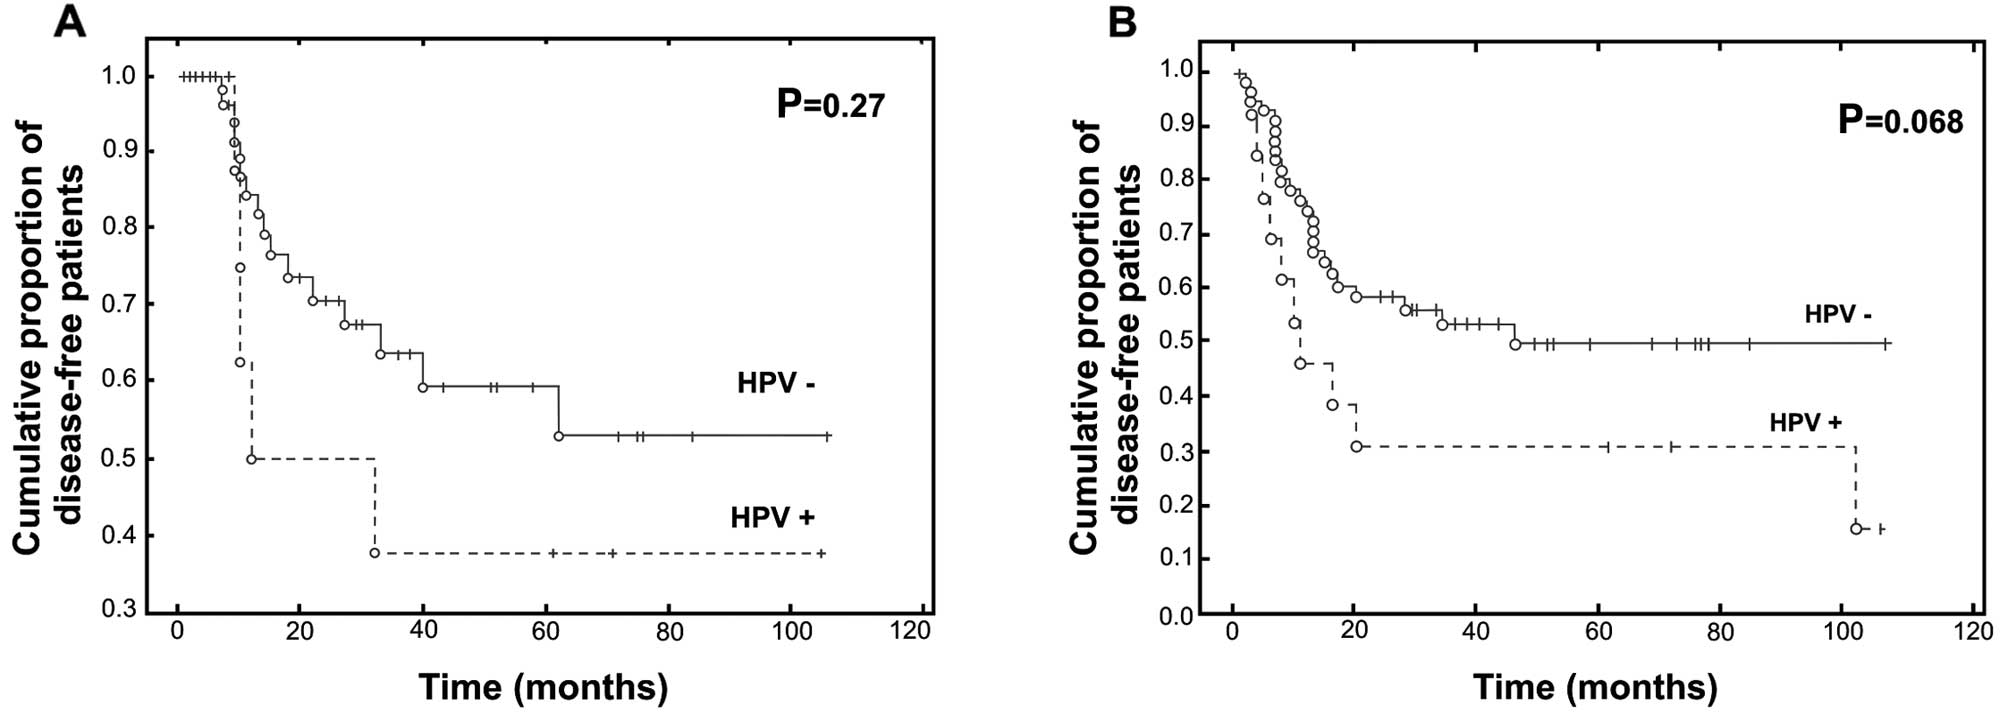 Hpv head and neck cancer survival rates, Risultati pap test papilloma virus